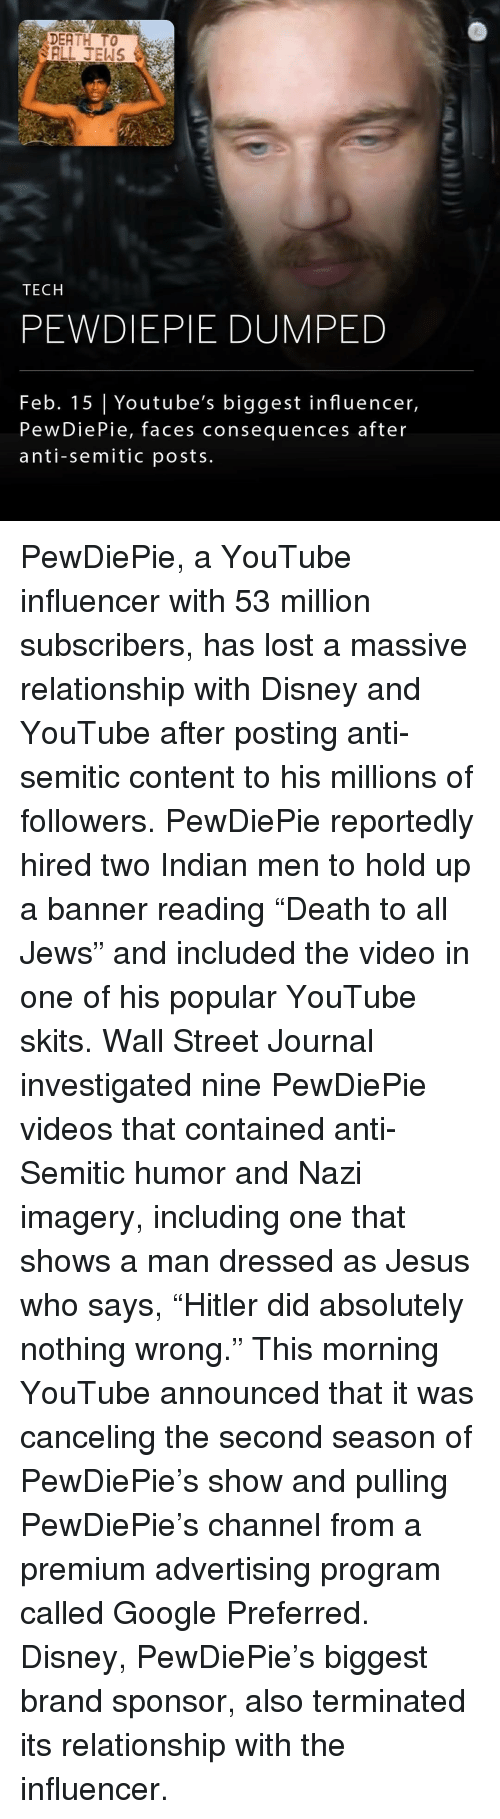 "53 Million: DEATH TO  TECH  PEWDIEPIE DUMPED  Feb. 15 Youtube's biggest influencer,  PewDie Pie, faces consequences after  anti-Semitic posts PewDiePie, a YouTube influencer with 53 million subscribers, has lost a massive relationship with Disney and YouTube after posting anti-semitic content to his millions of followers. PewDiePie reportedly hired two Indian men to hold up a banner reading ""Death to all Jews"" and included the video in one of his popular YouTube skits. Wall Street Journal investigated nine PewDiePie videos that contained anti-Semitic humor and Nazi imagery, including one that shows a man dressed as Jesus who says, ""Hitler did absolutely nothing wrong."" This morning YouTube announced that it was canceling the second season of PewDiePie's show and pulling PewDiePie's channel from a premium advertising program called Google Preferred. Disney, PewDiePie's biggest brand sponsor, also terminated its relationship with the influencer."